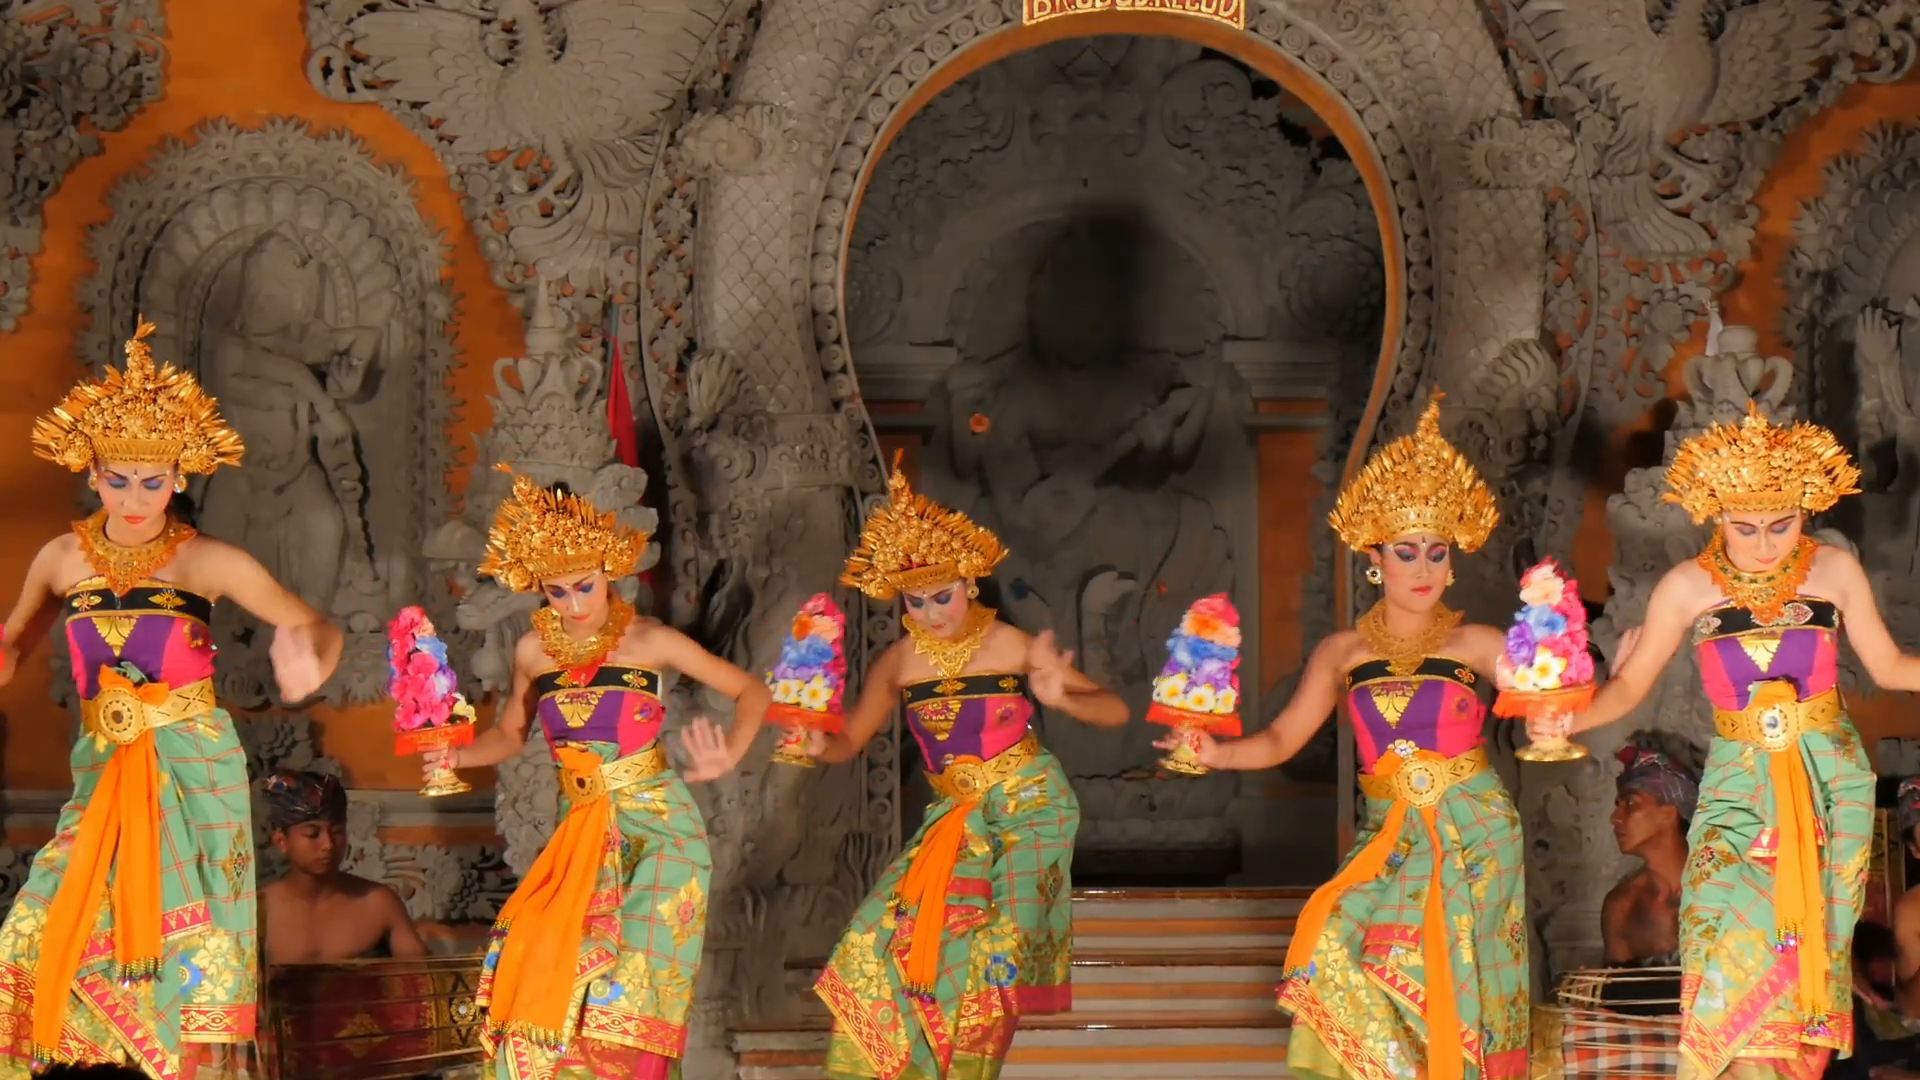 group of balinese dancers dancing performing on stage barong dance 501183 hd wallpaper backgrounds download balinese dancers dancing performing